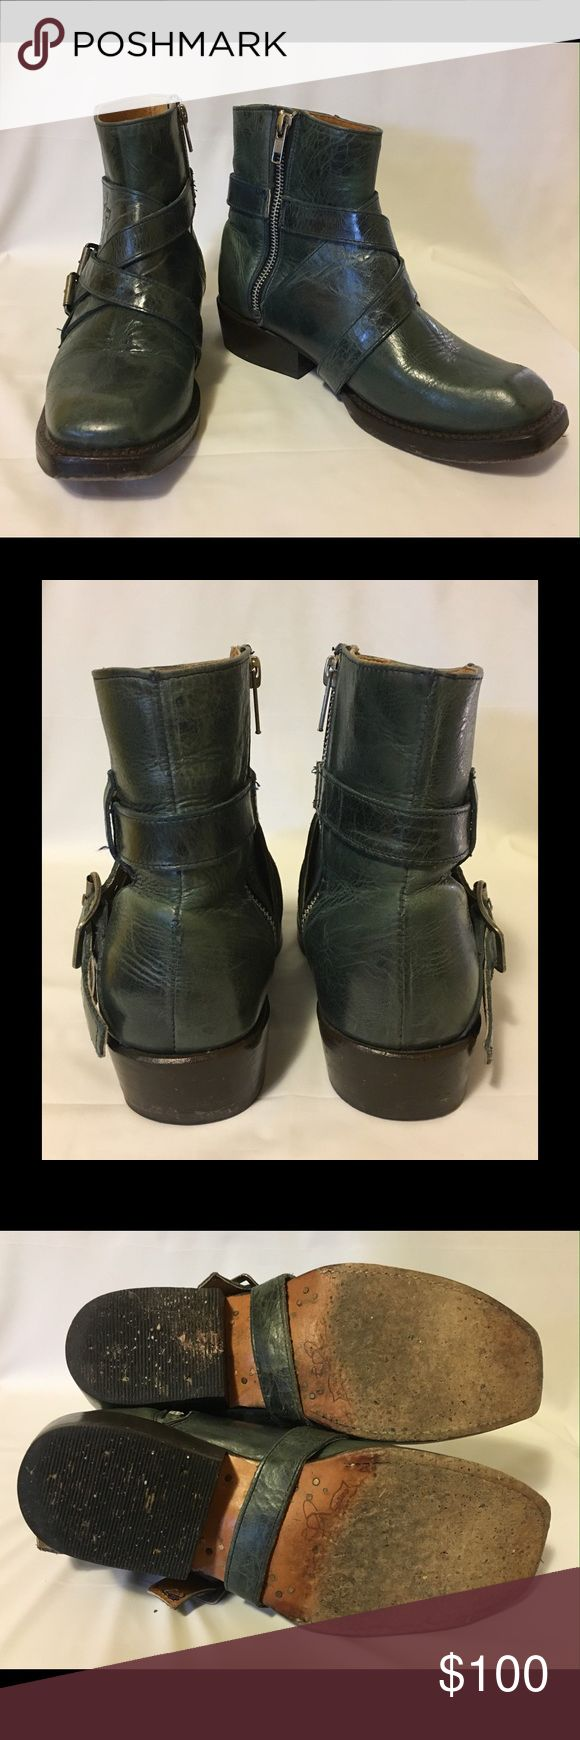 John Fluevog Earl of Warwick Lancaster Boots Amazing boots with a real attitude. This pair has been well worn but still has plenty of life left in them. These run large; men's 4 fits like a women's 7. John Fluevog Shoes